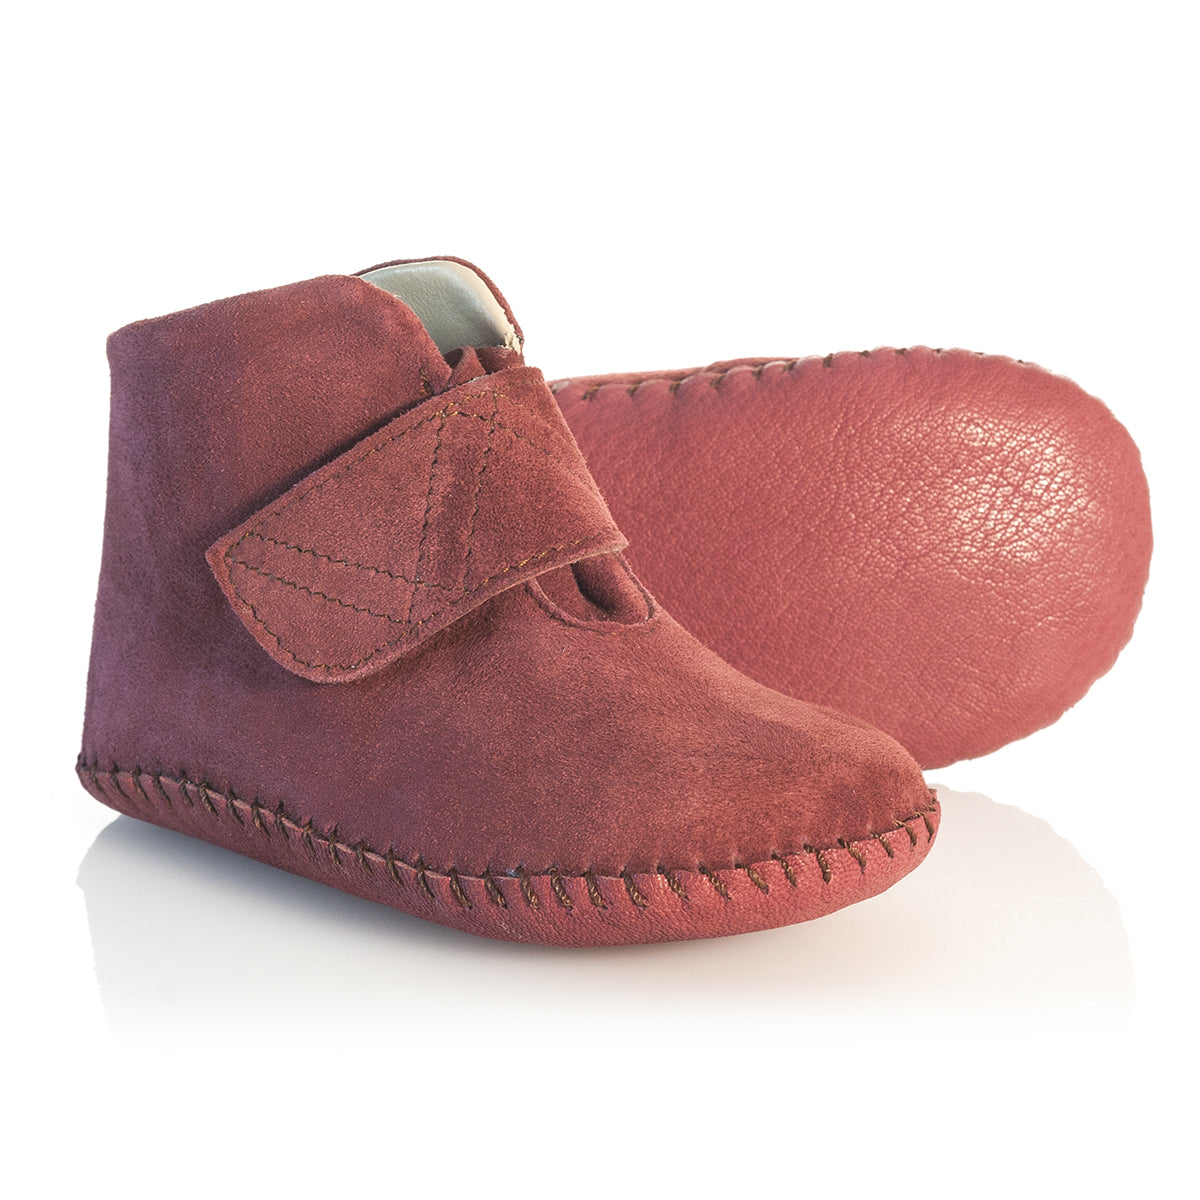 Vibys-Baby-Shoes-Puppy-Paws-Burgundy-sole-view